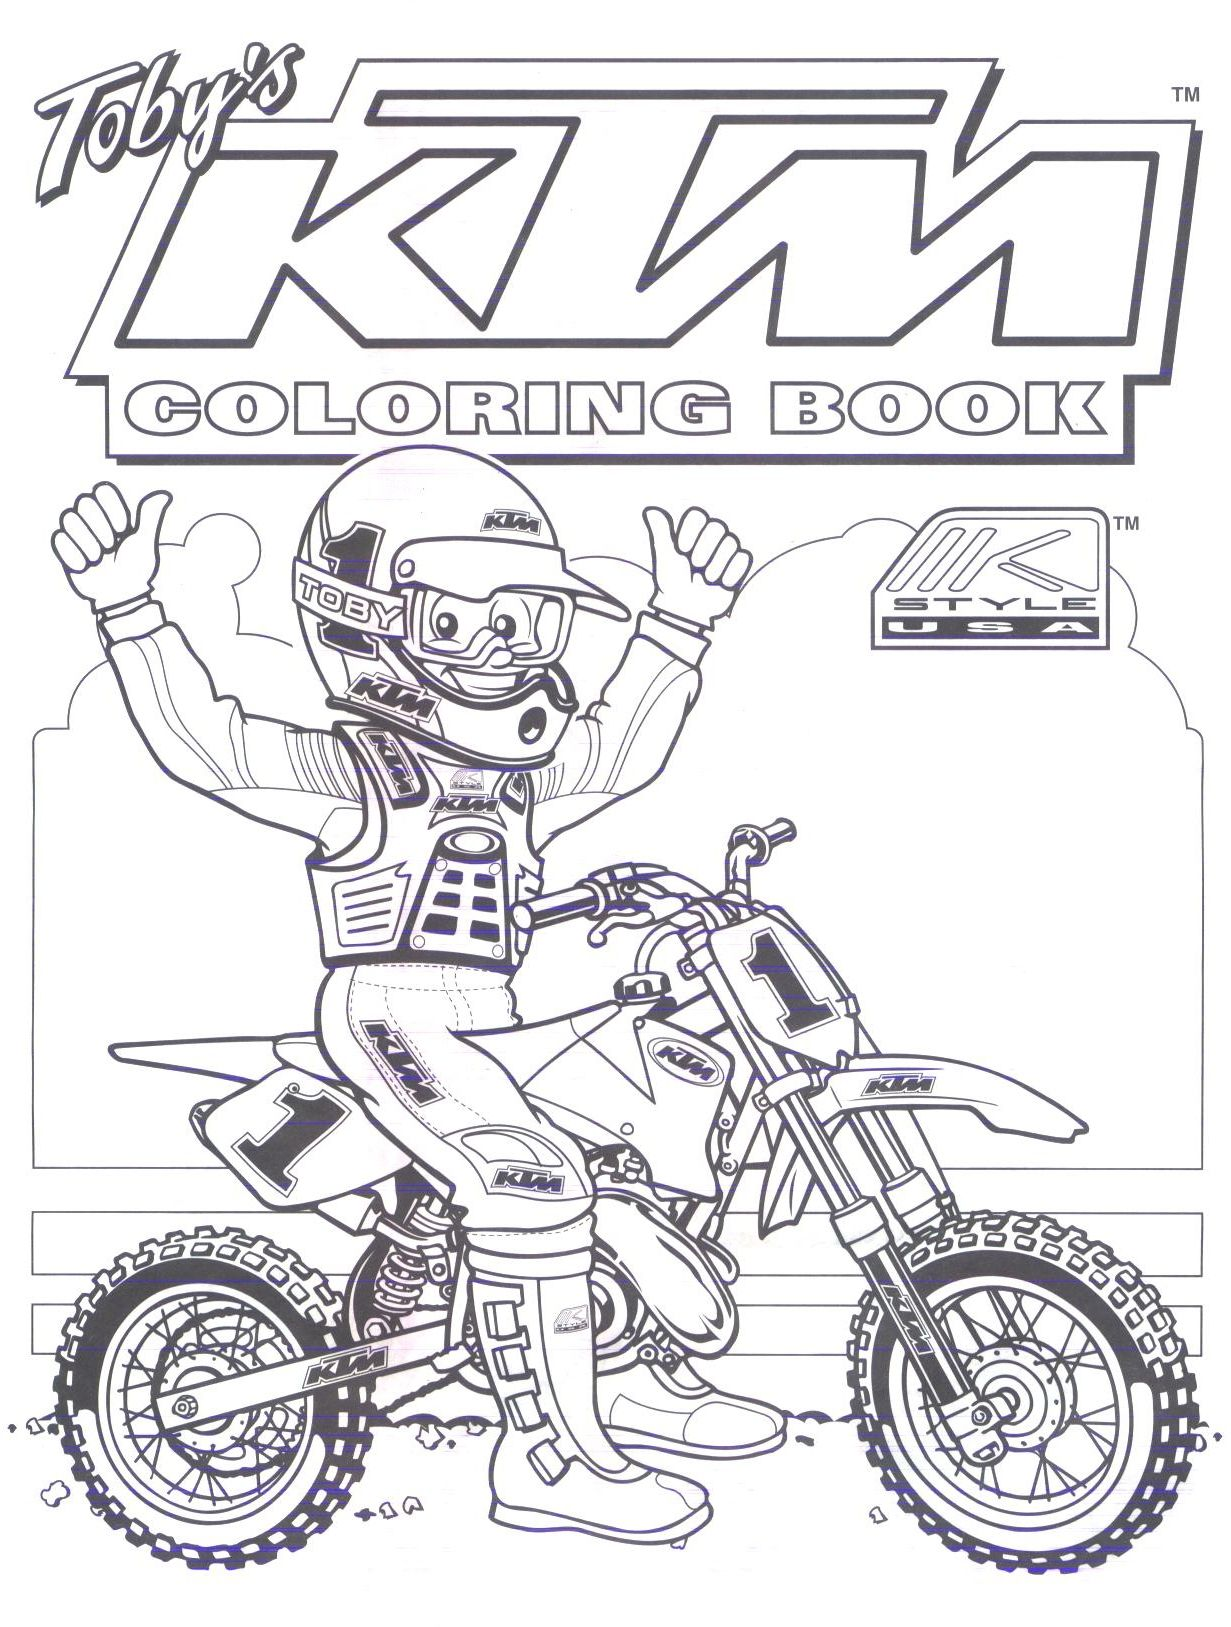 Color book party mn - Ktm Dirt Bike Coloring Pages More